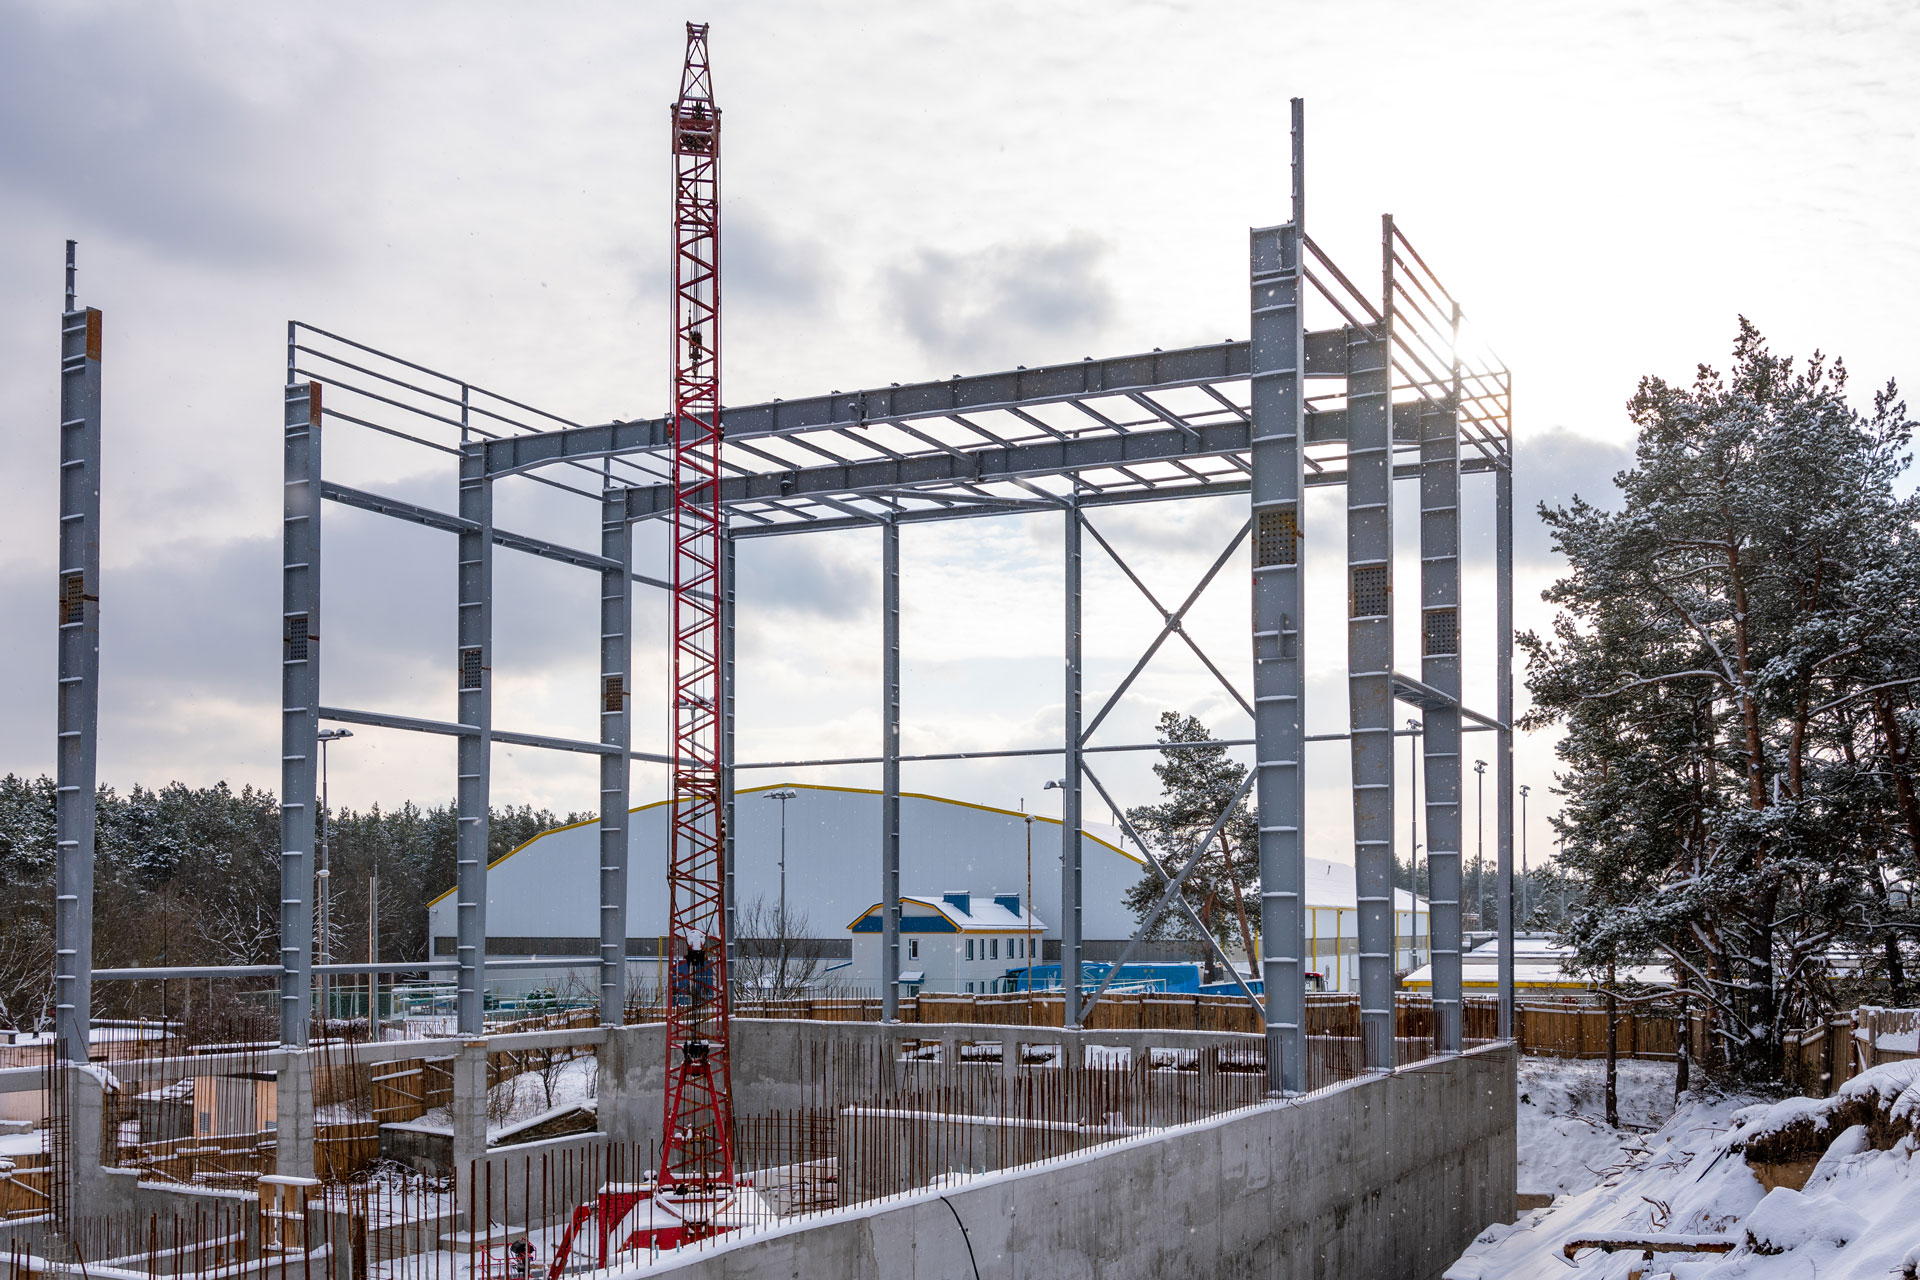 Metal structures for the Olympic training and sports center.